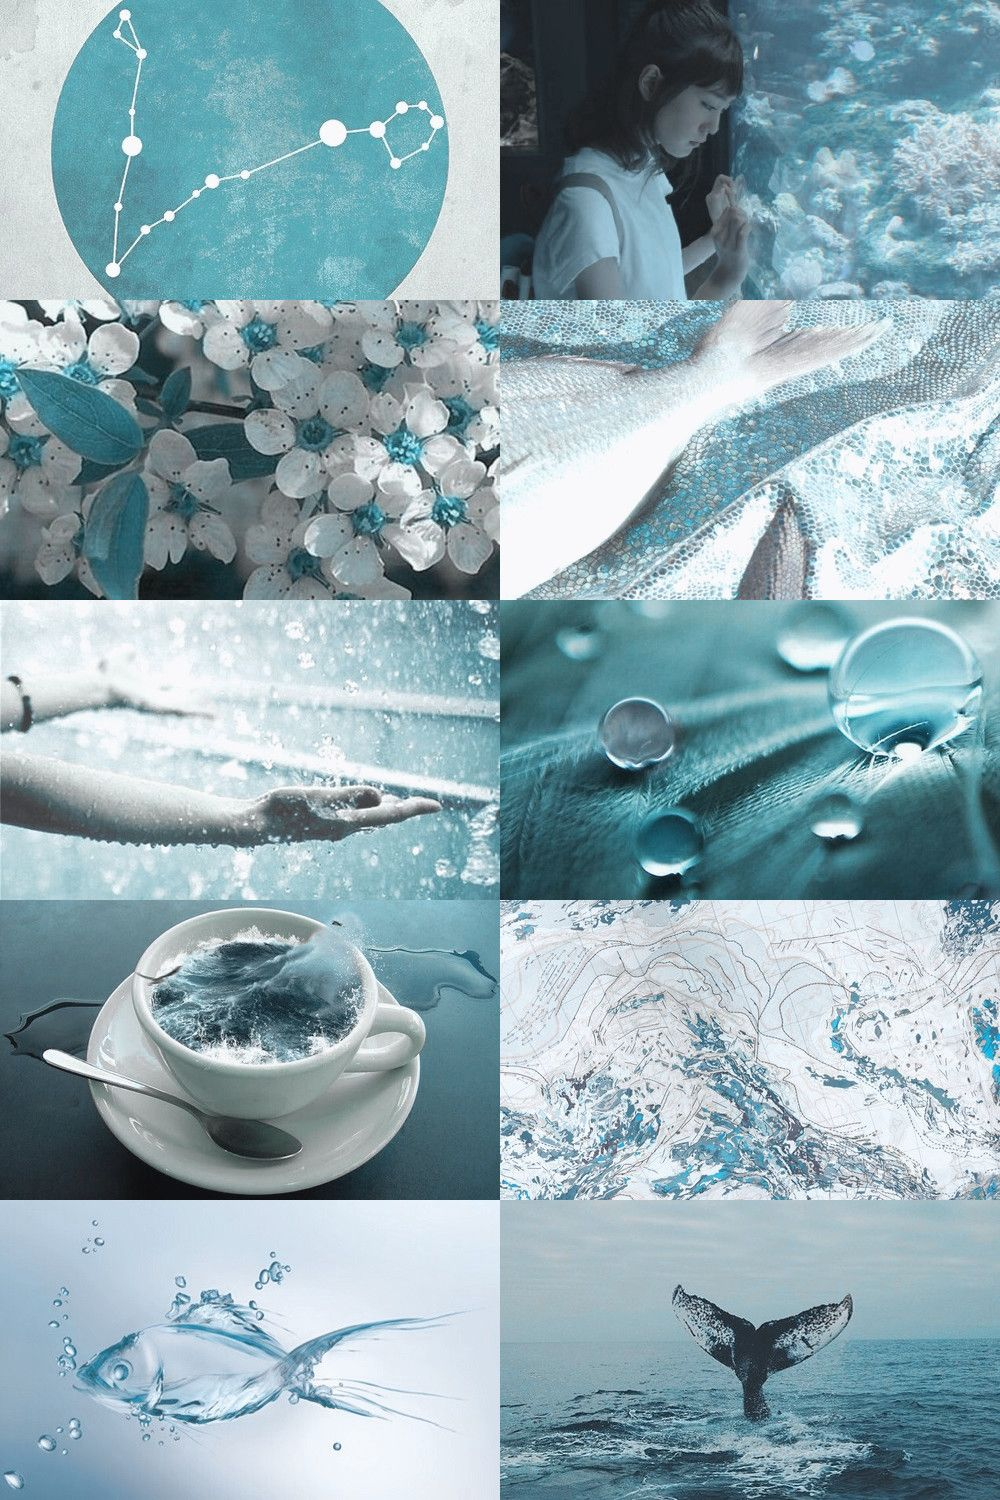 Aesthetic Shout Out Soft Persocom In 2020 Aesthetic Collage Pisces Witch Aesthetic